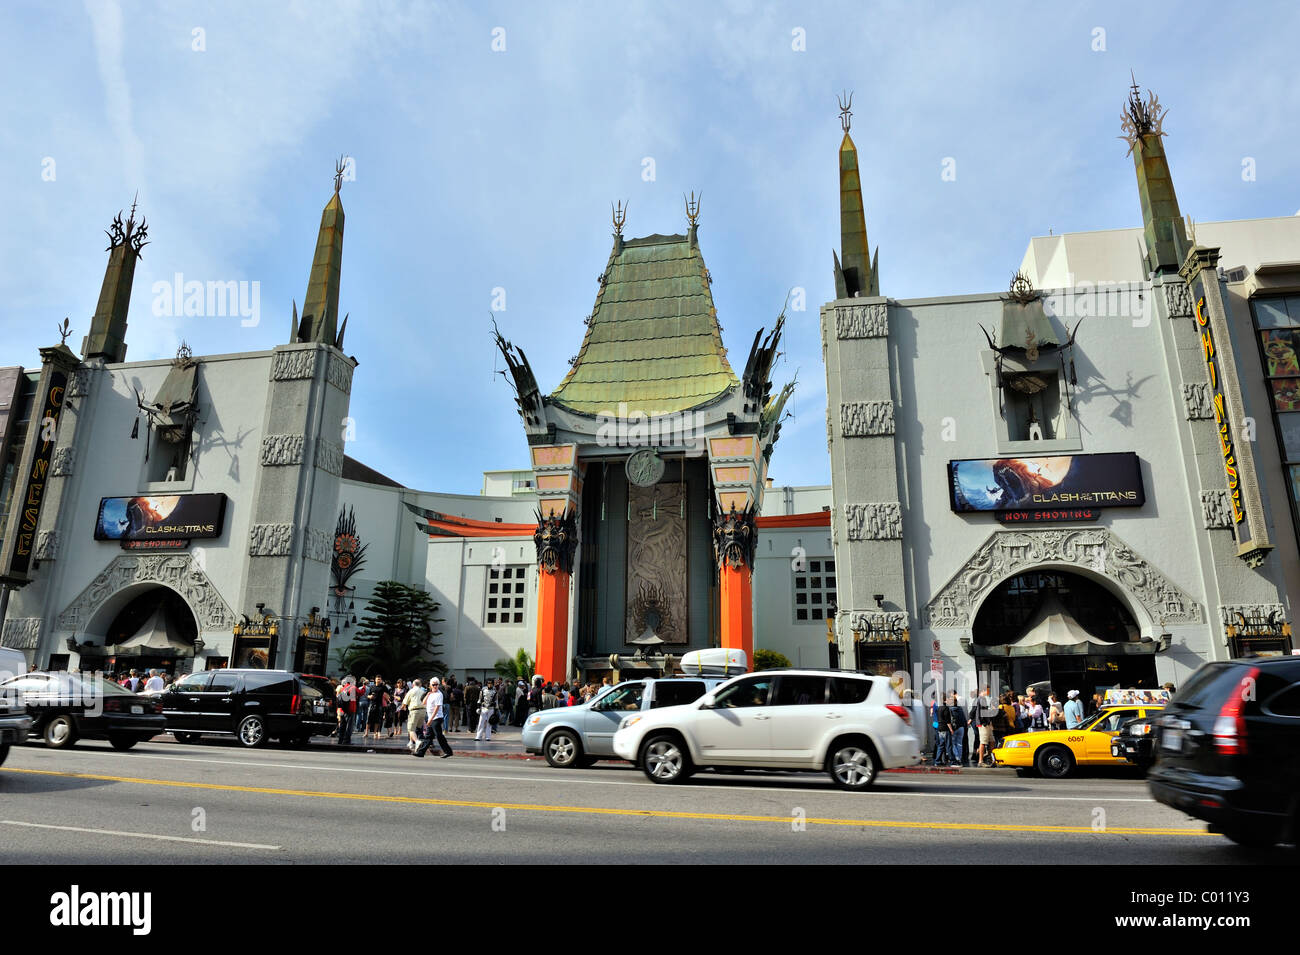 HOLLYWOOD - April 2: The legendary Grauman's Chinese Theatre in Hollywood is a must-see for tourists, seen here - Stock Image